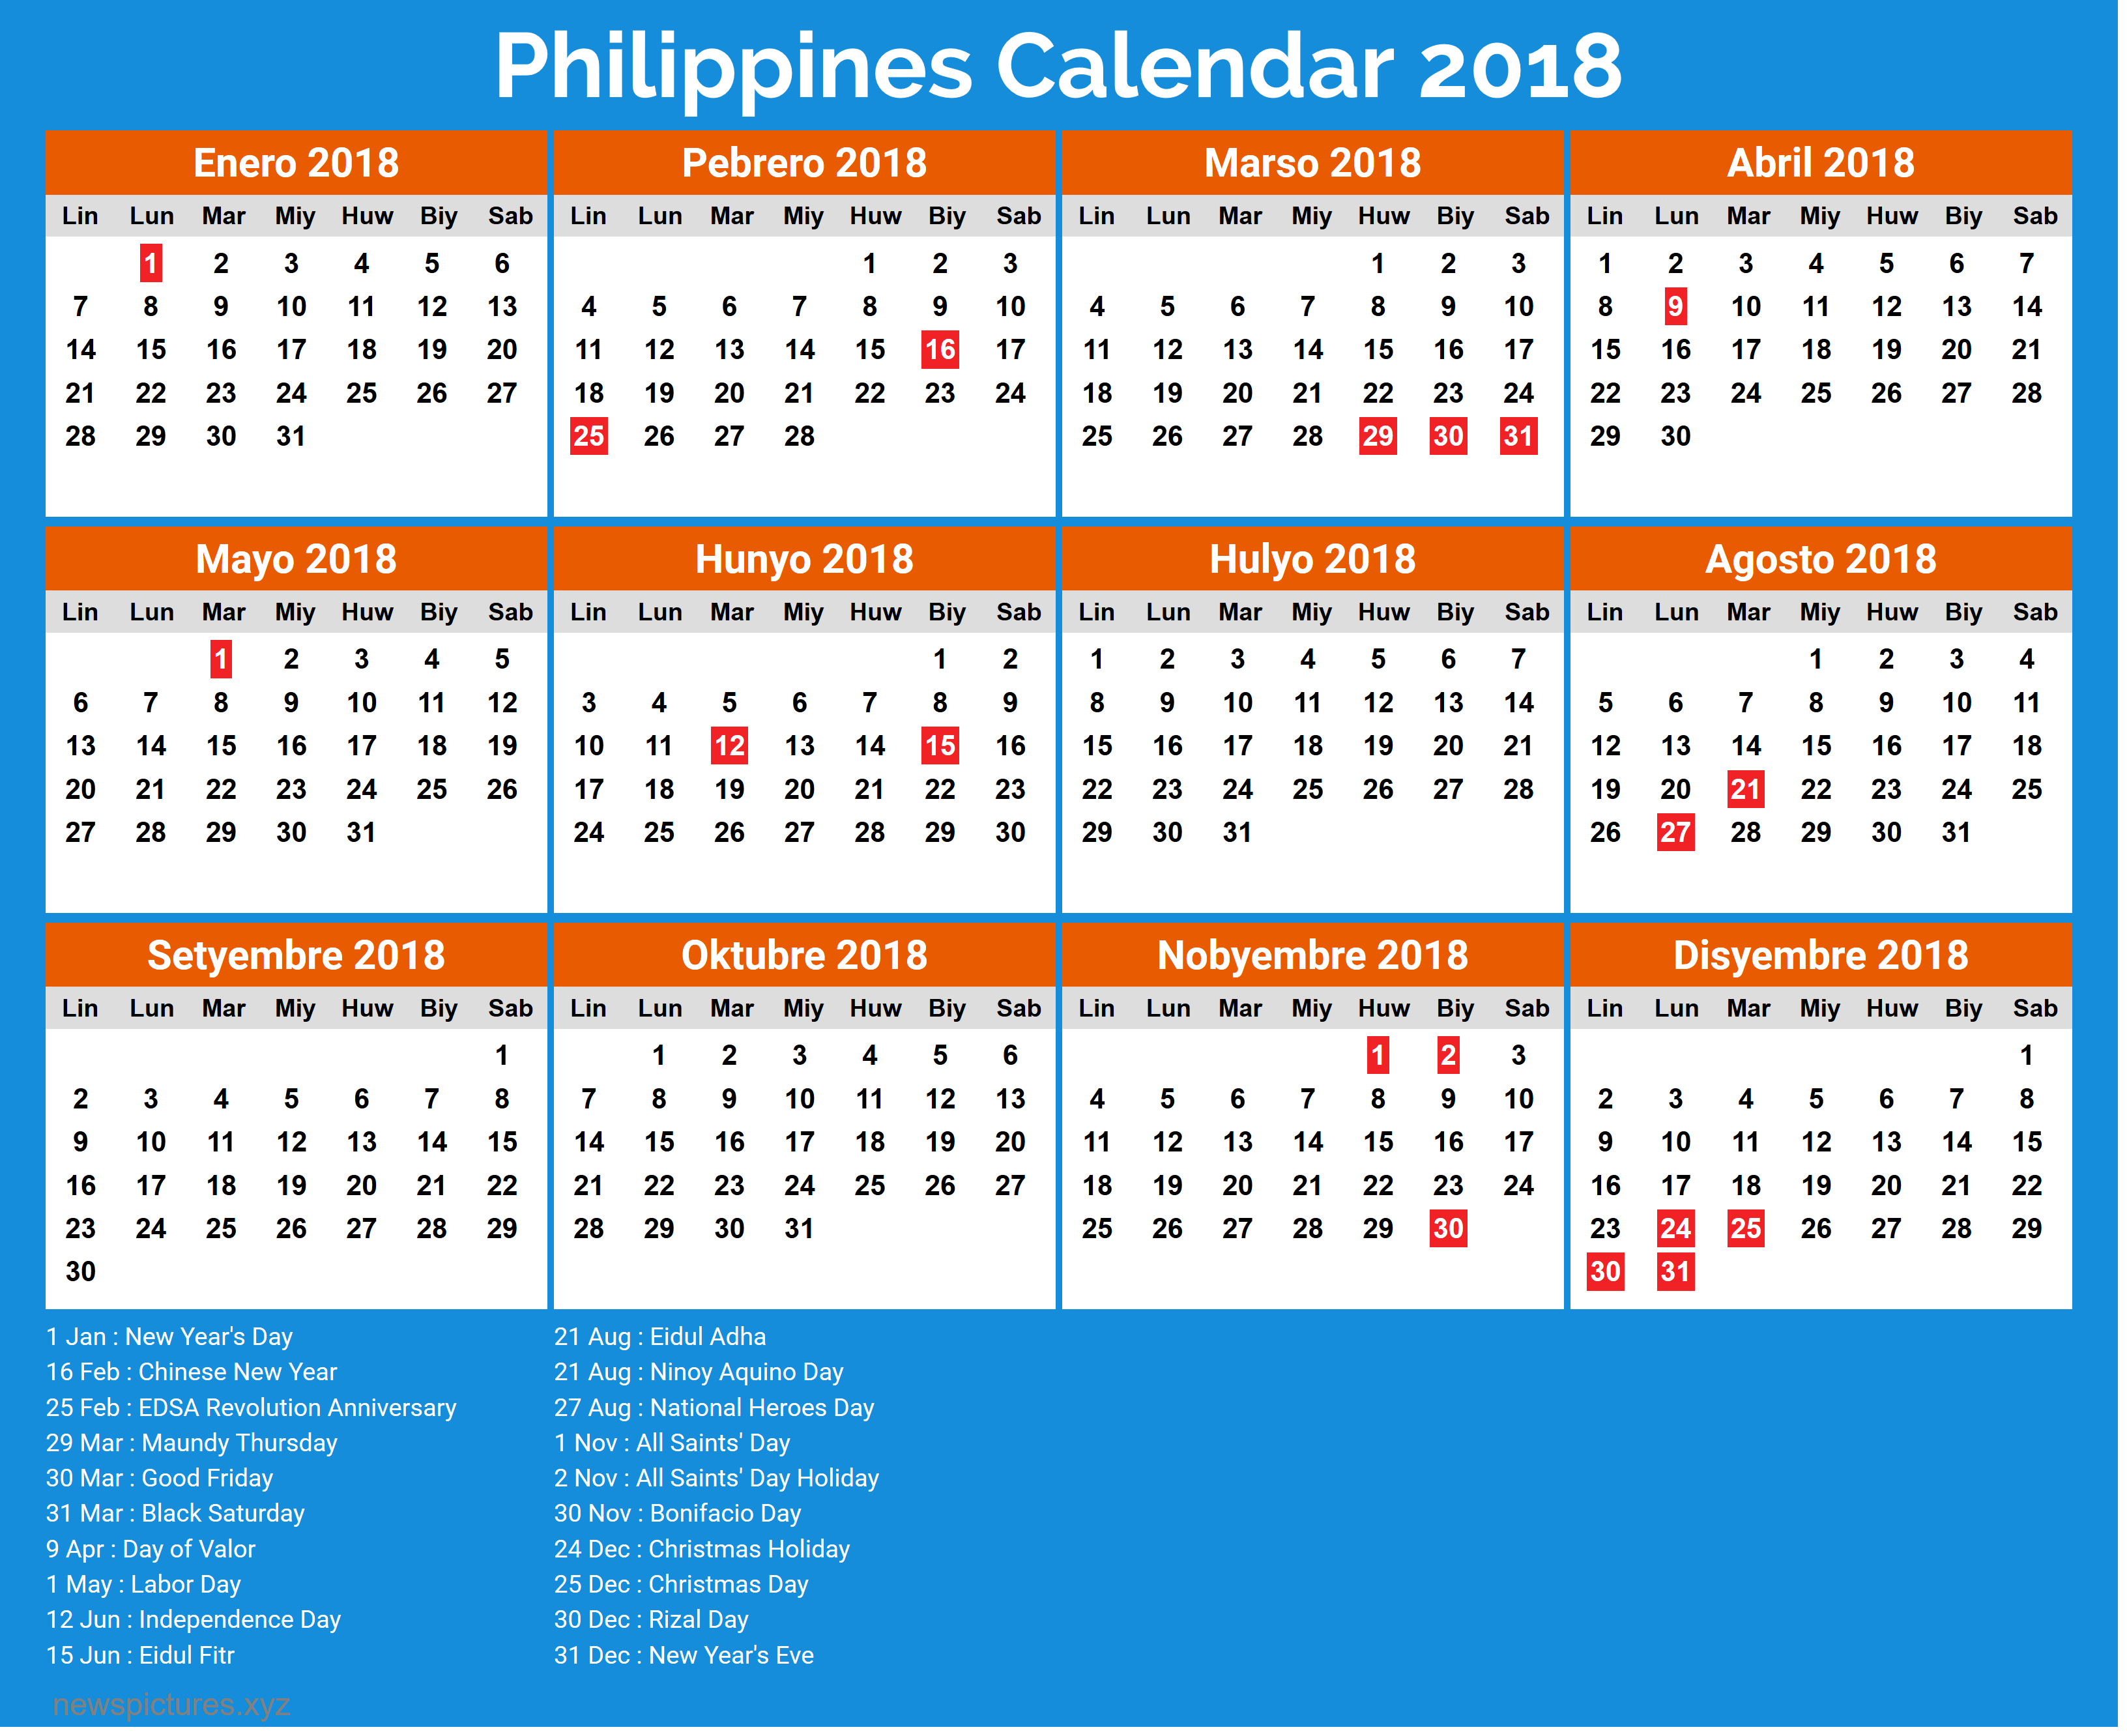 Year 2019 Calendar Philippines With Holidays For 2018 Printable